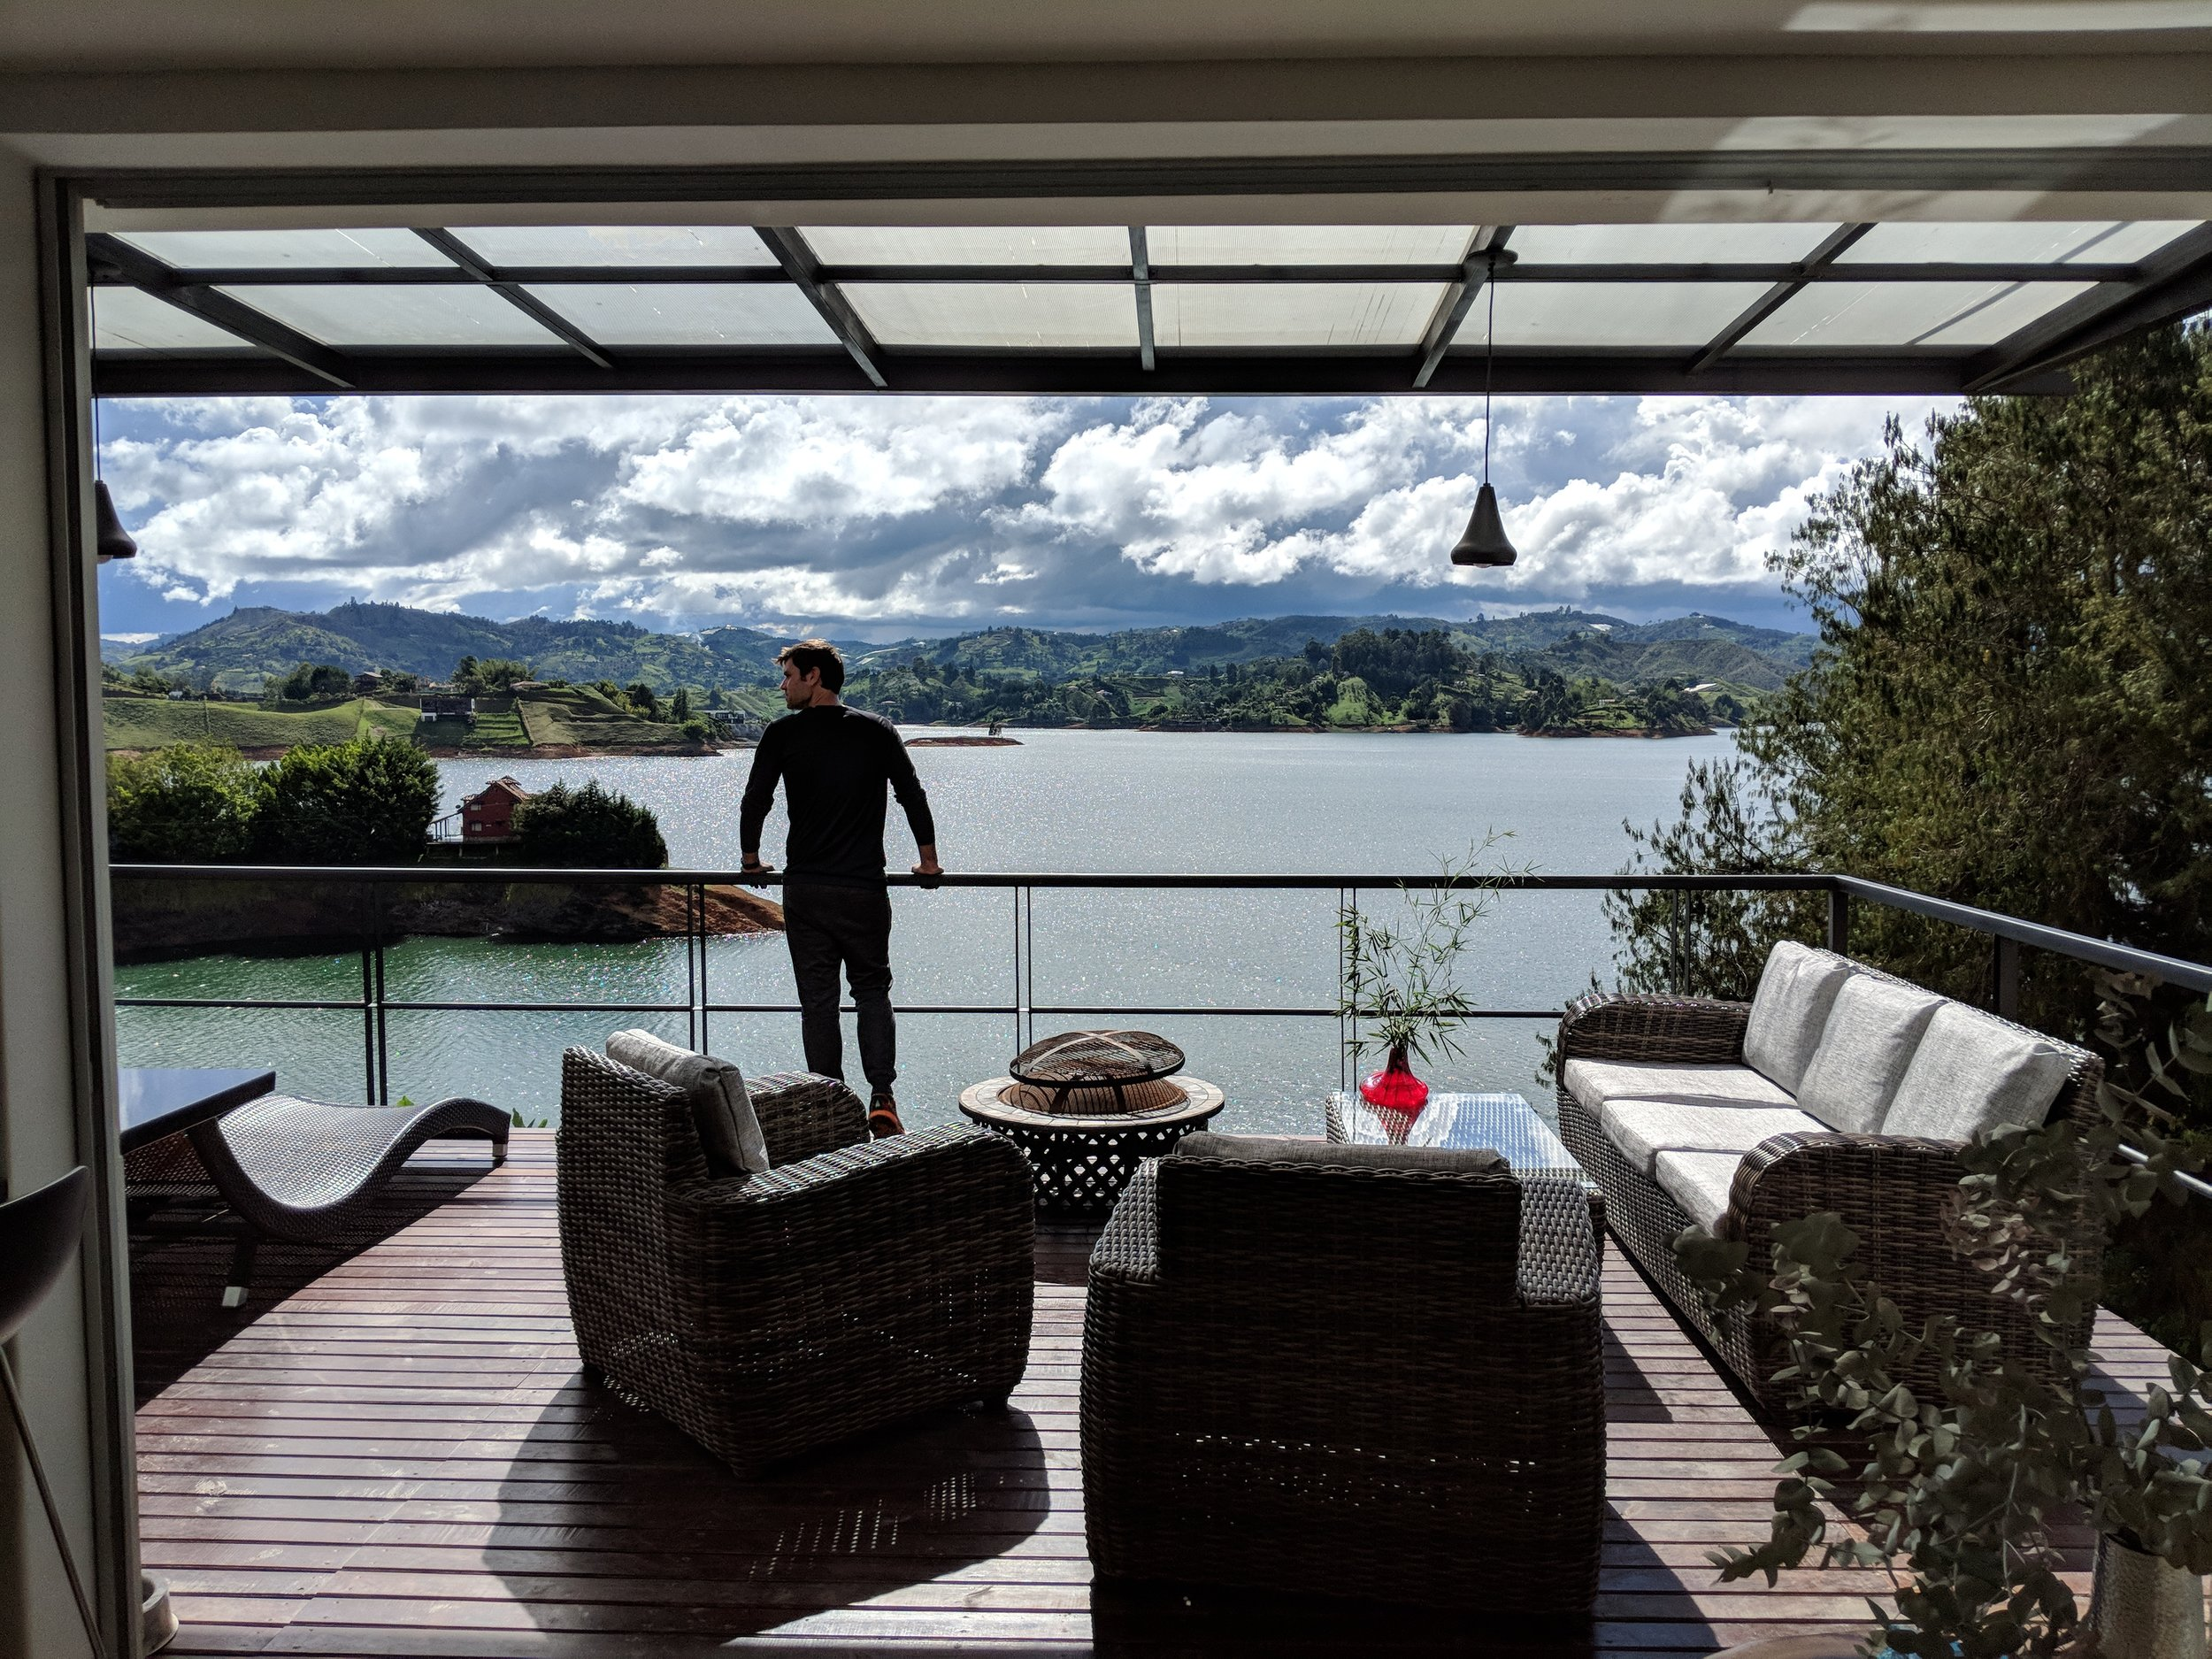 View from our  amazing Airbnb  in Guatape, Colombia…a splurge for sure. But totally worth it for Nic's birthday weekend.